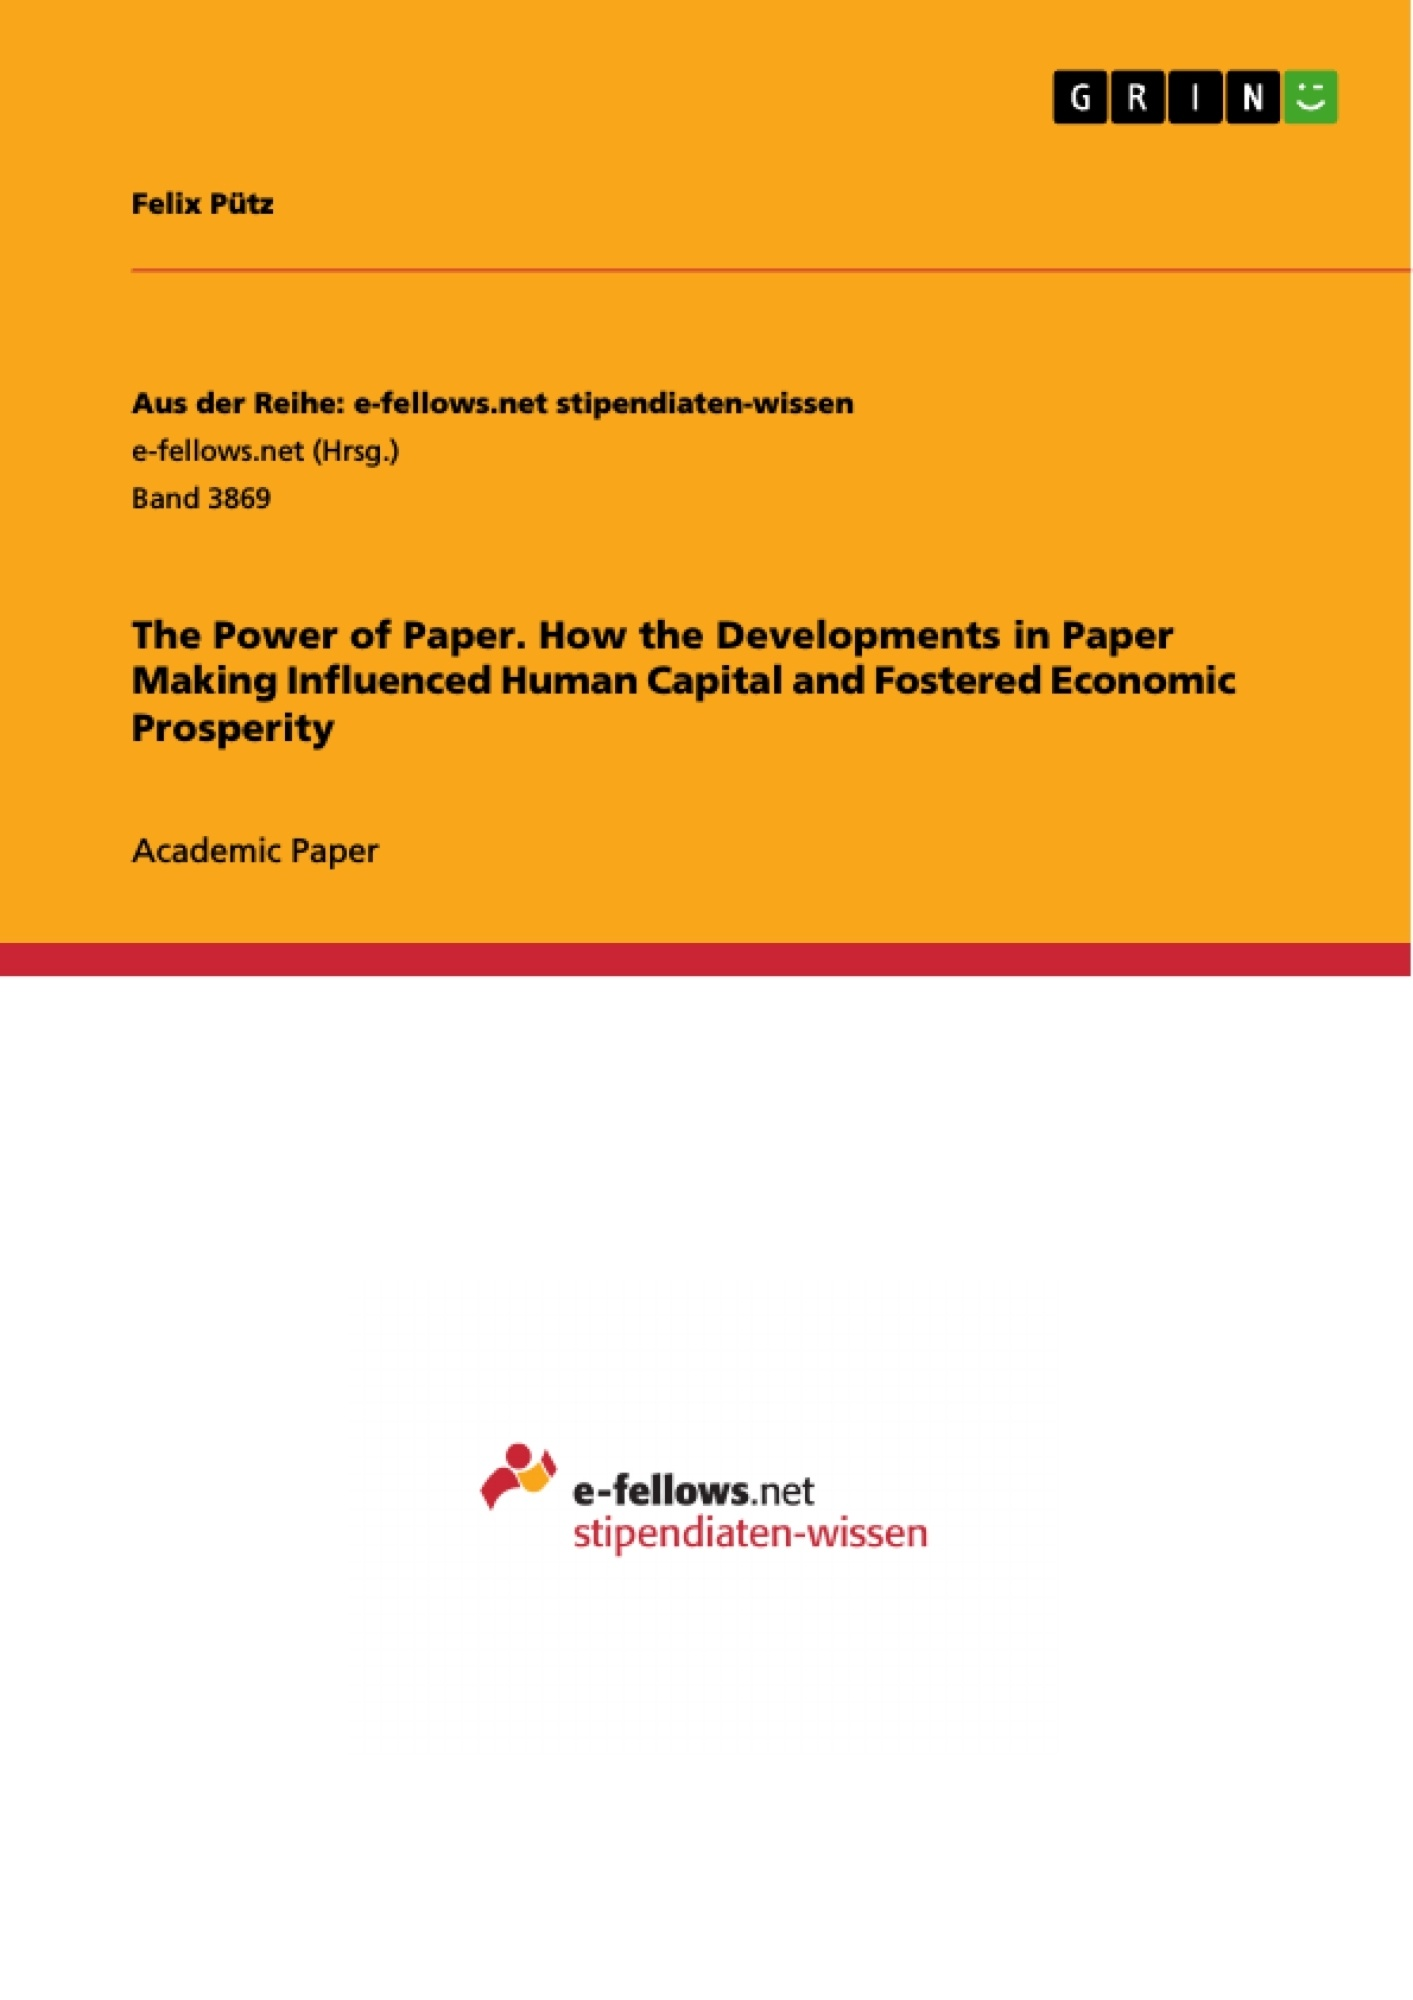 Title: The Power of Paper. How the Developments in Paper Making Influenced Human Capital and Fostered Economic Prosperity